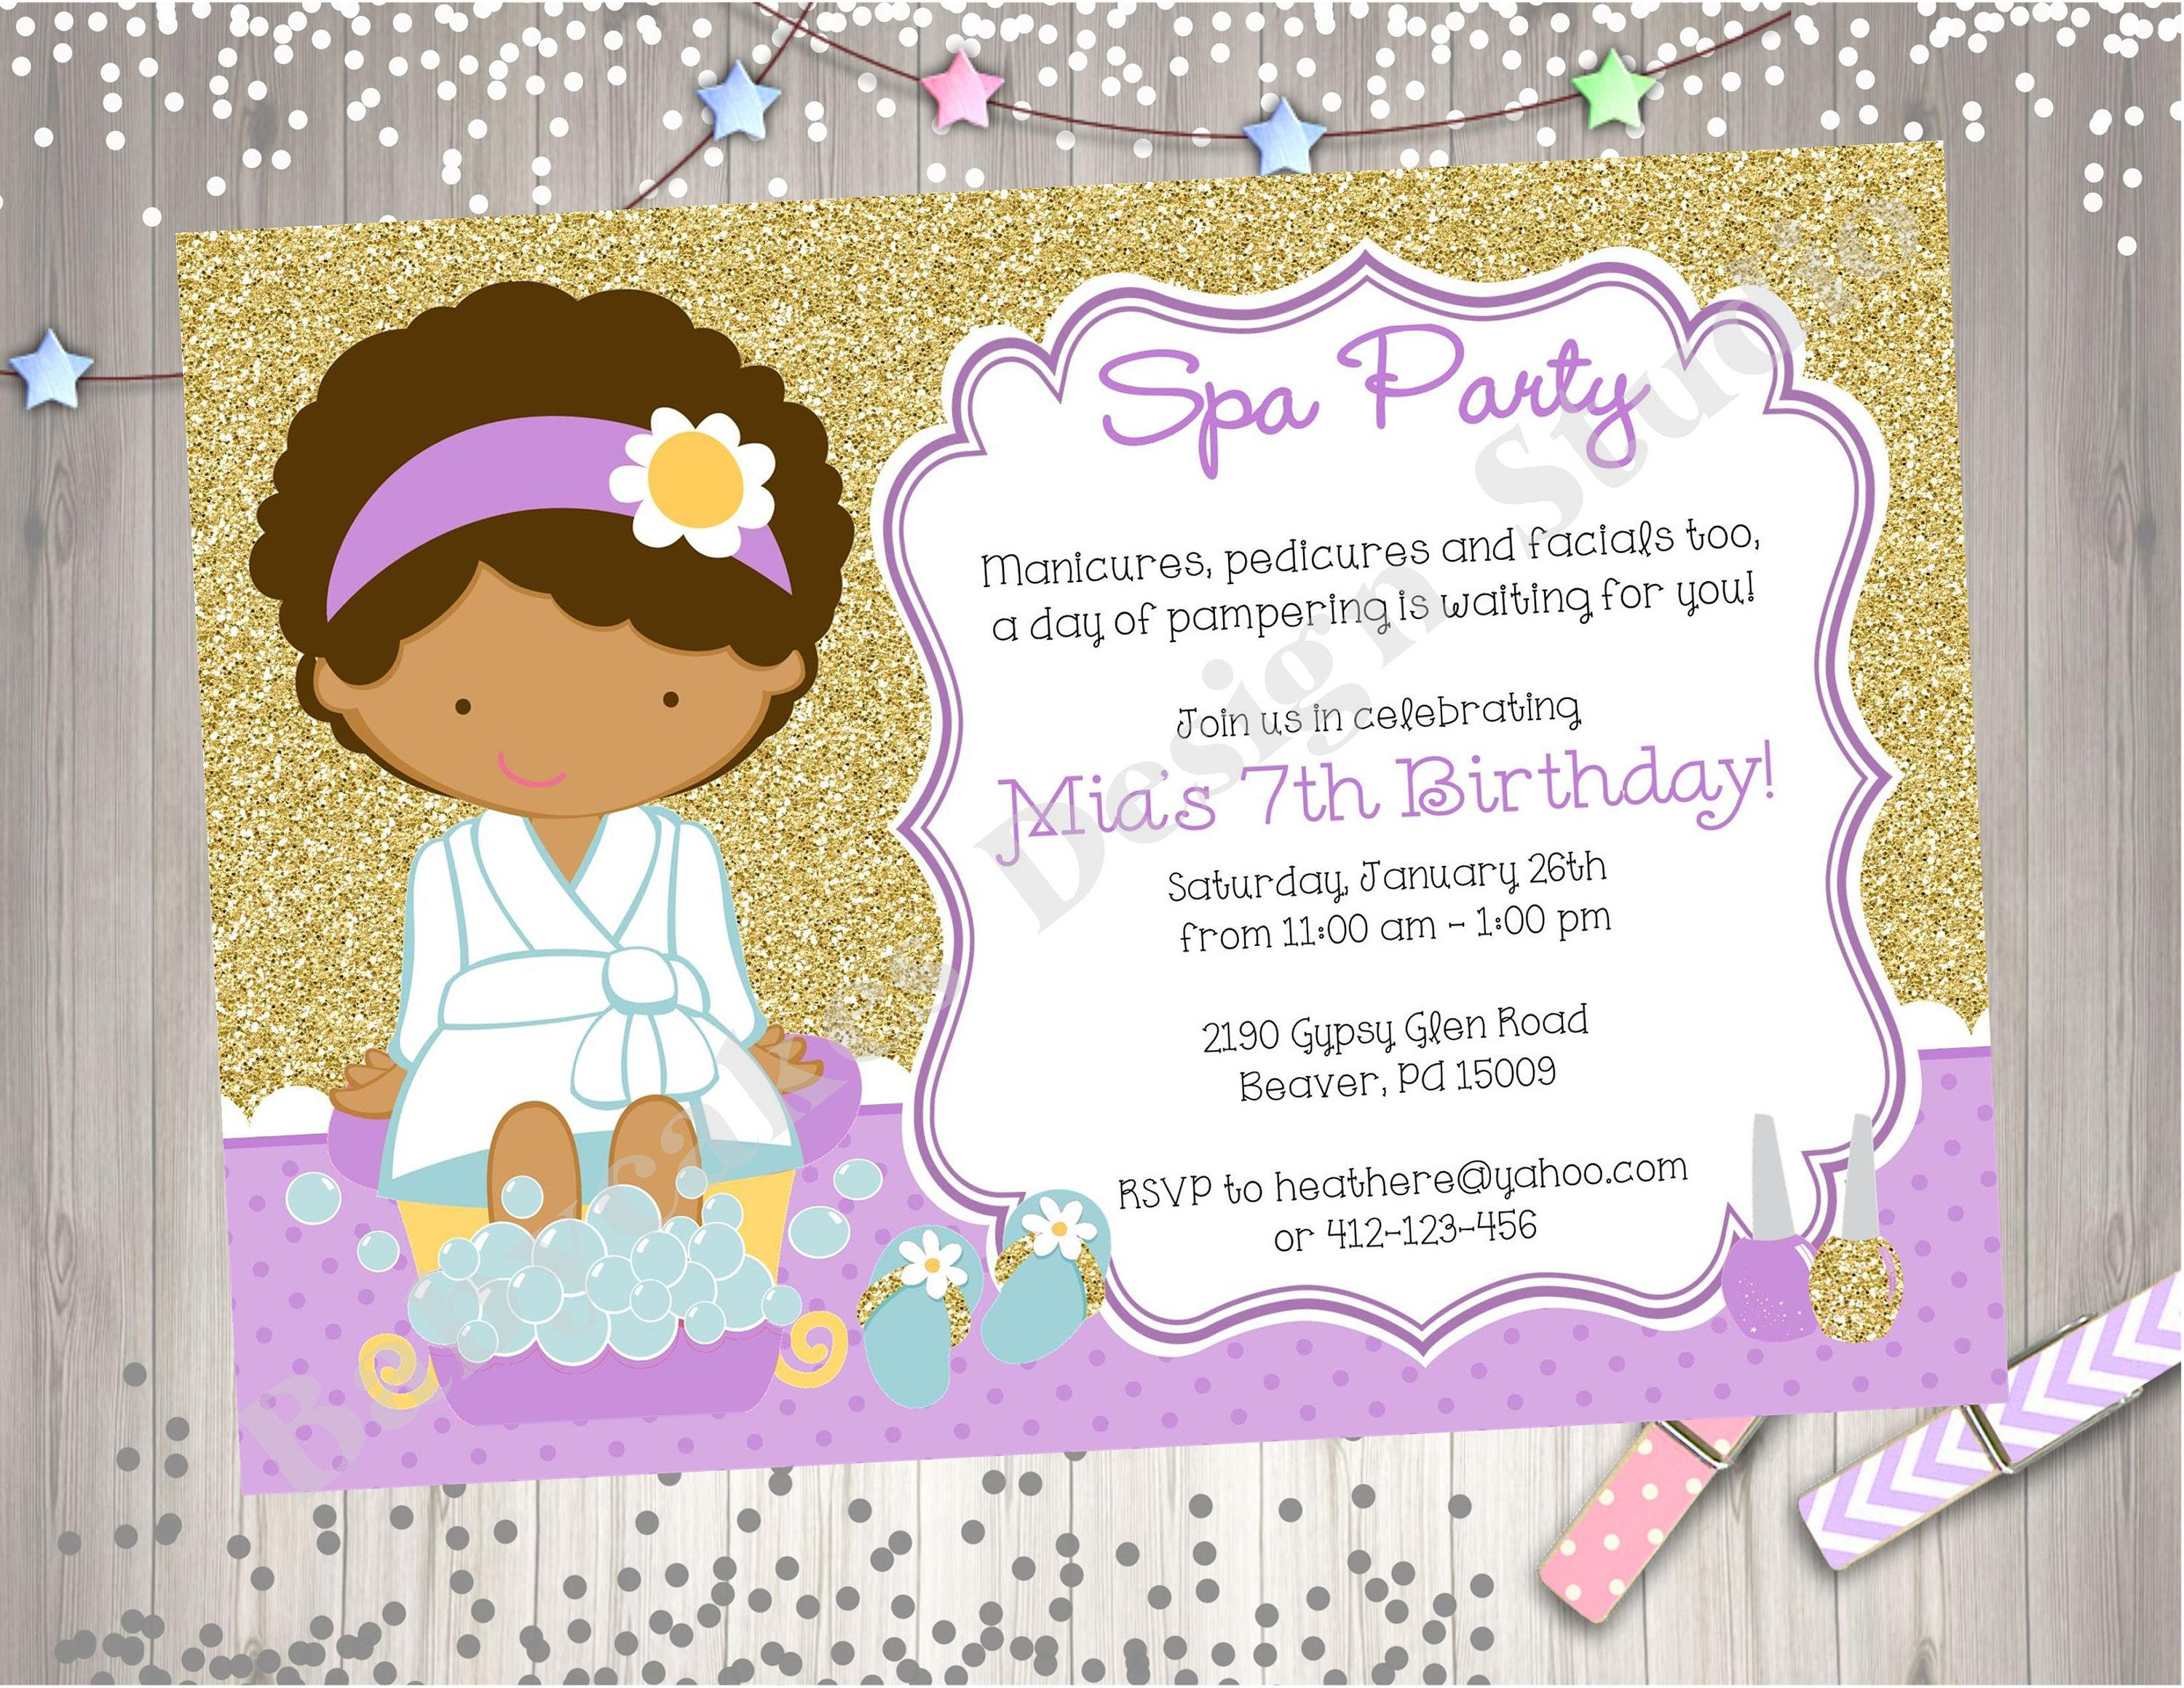 Spa Party Birthday Invitation Invite Purple and Gold Spa Birthday ...